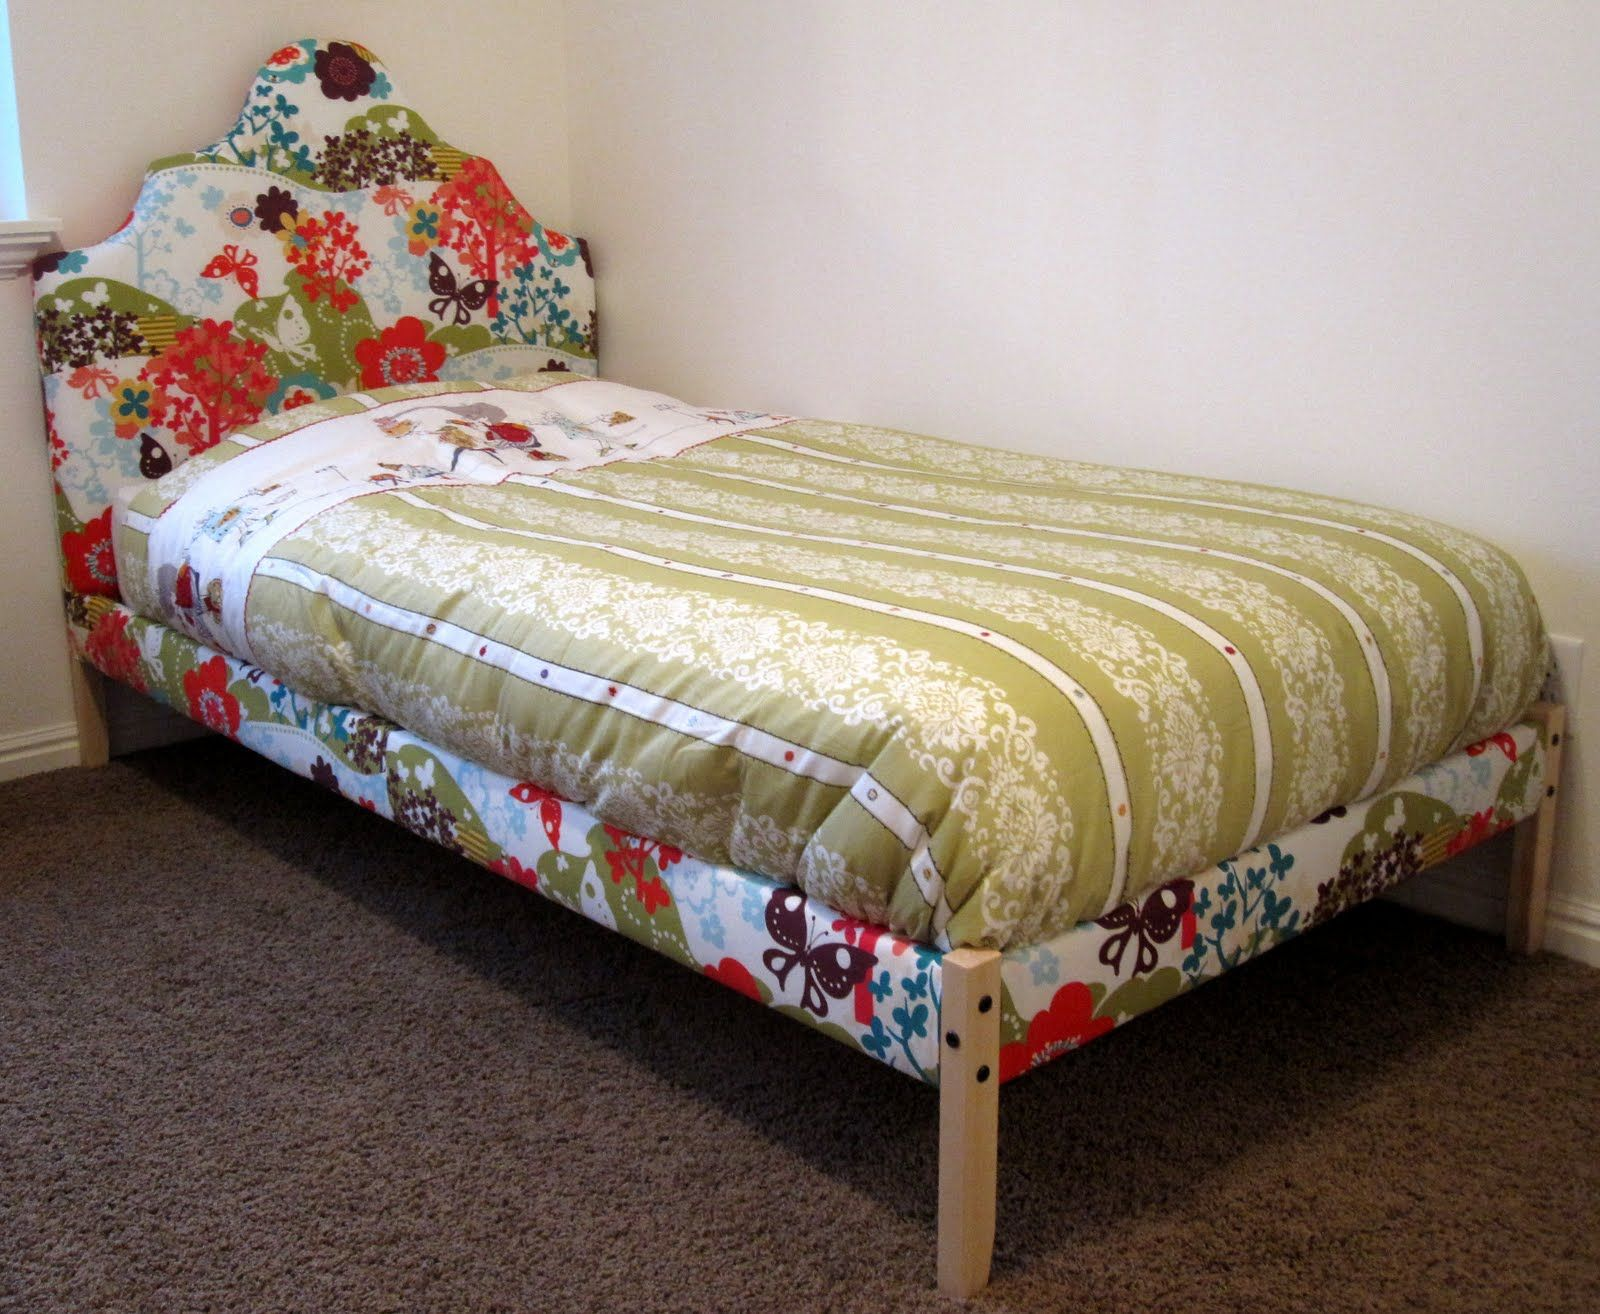 IKEA Fjellse bed upholstered Stain the legs darker to match the